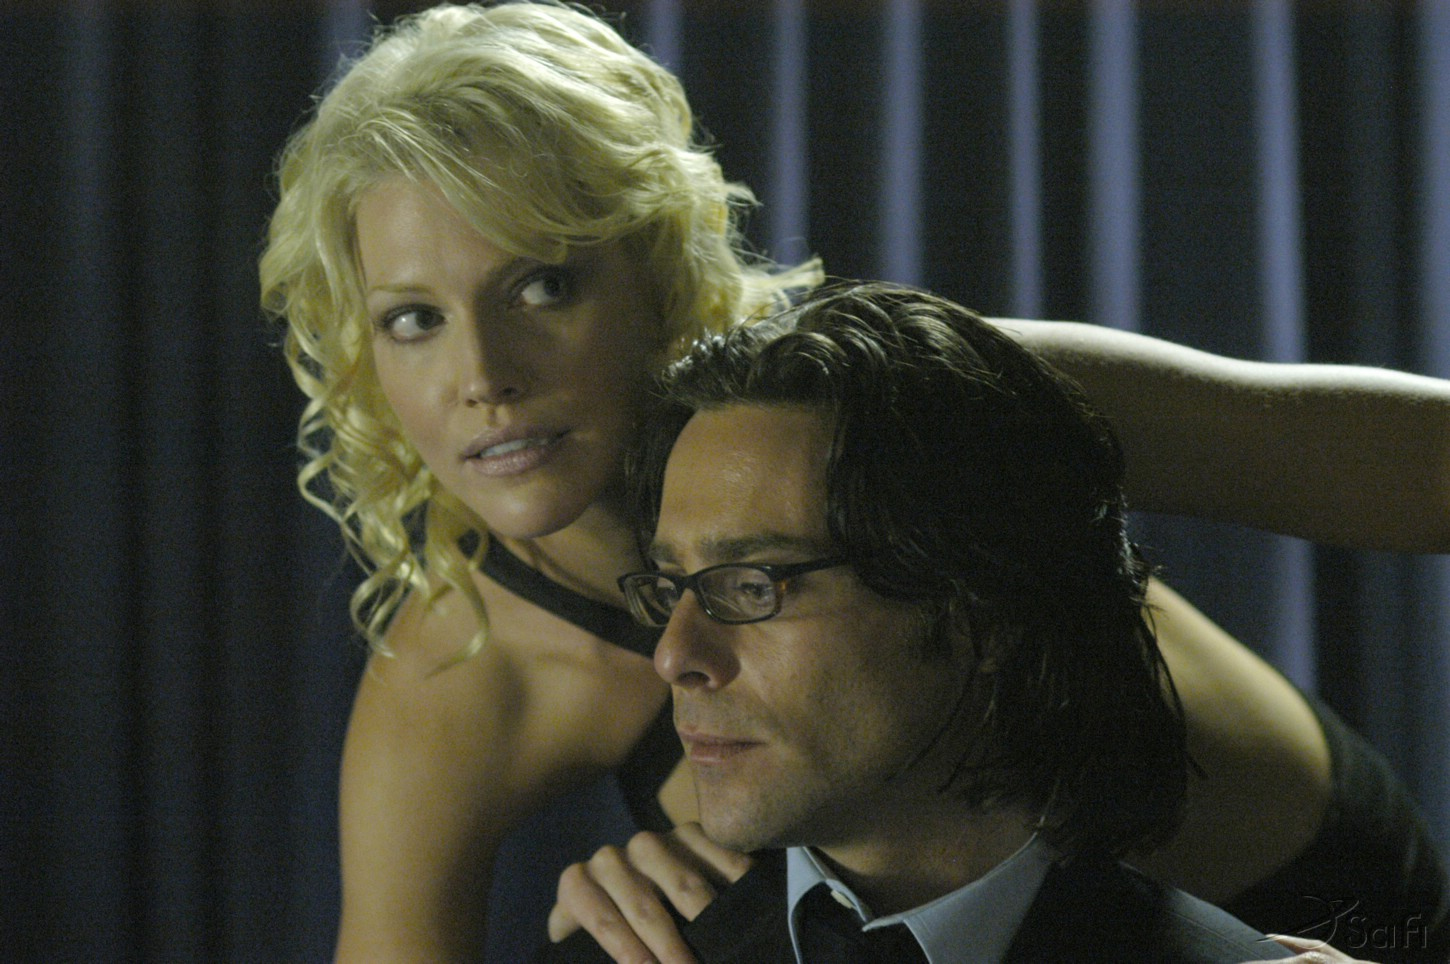 James Callis and Tricia Helfer in Battlestar Galactica (2004)